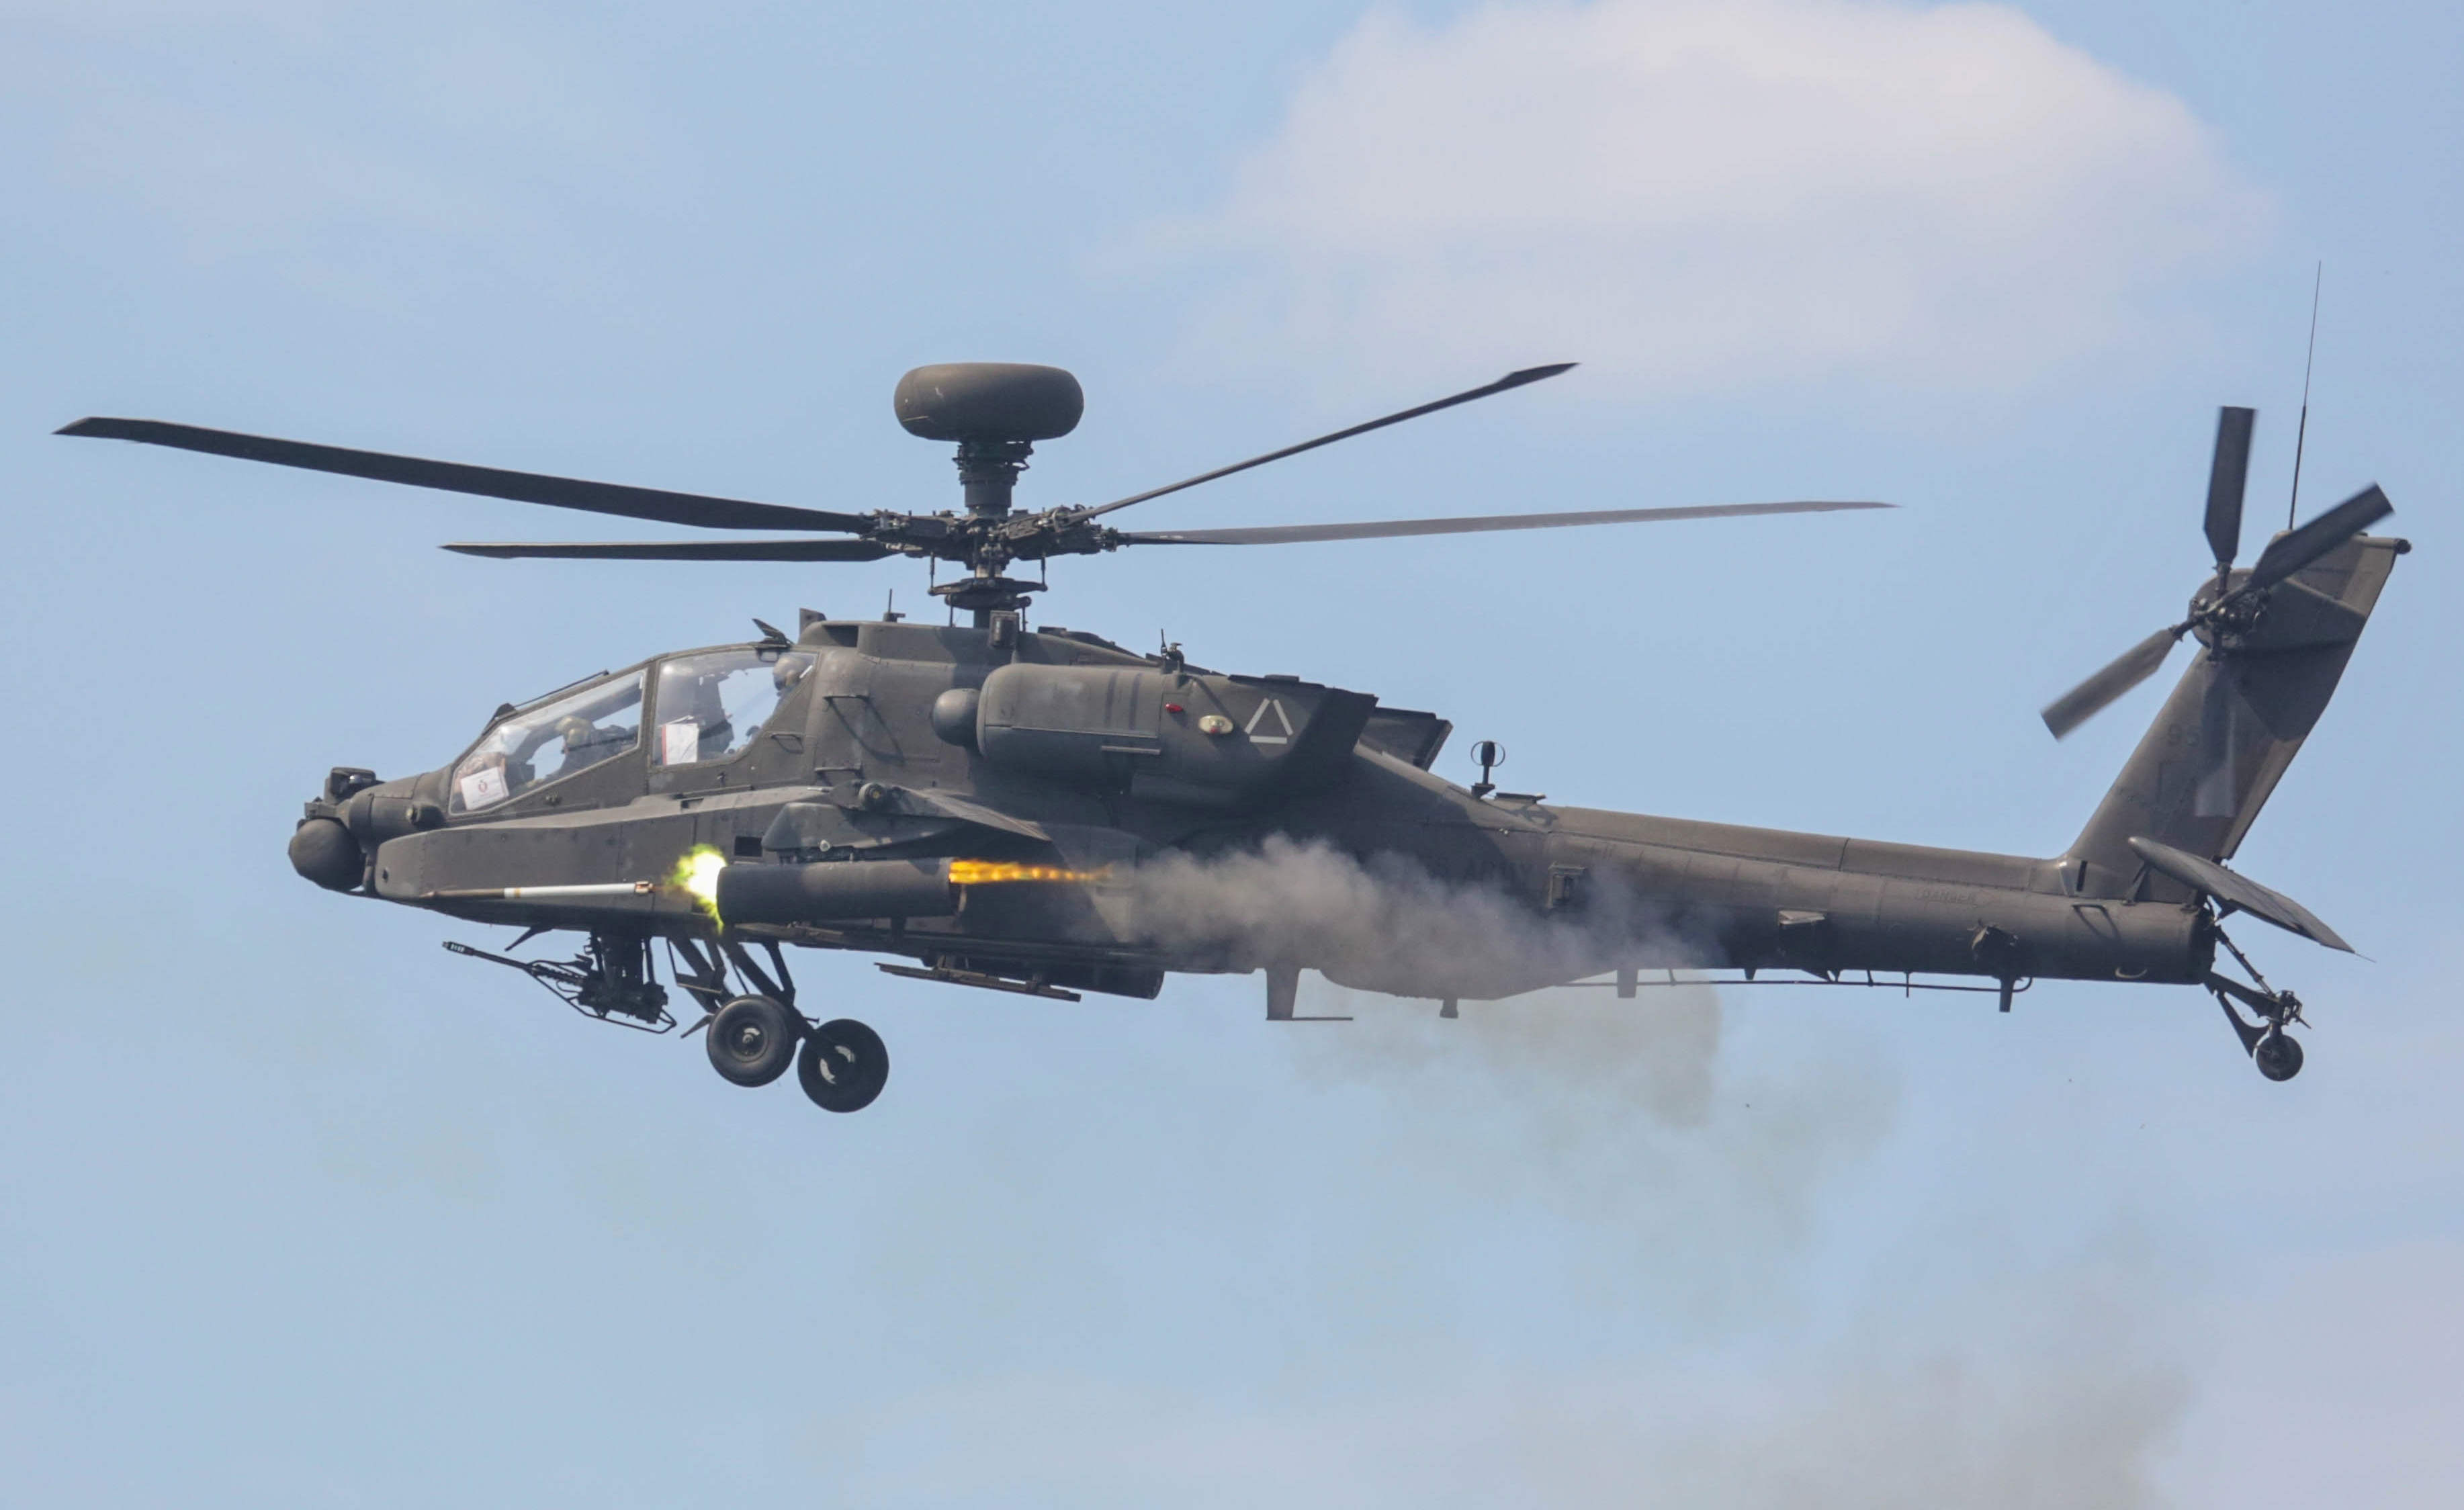 rc ah 64 apache helicopter with Apache Helicopter Manufacturer on A Few Toys Games And More in addition Boeing Sikorsky RAH 66 also Aircraft Specific Maintenance Platforms in addition Grumman F 14 Tomcat Cutaway Spaccato Profili moreover Hnaircraf its Revell Ah64d Longbow Apache.